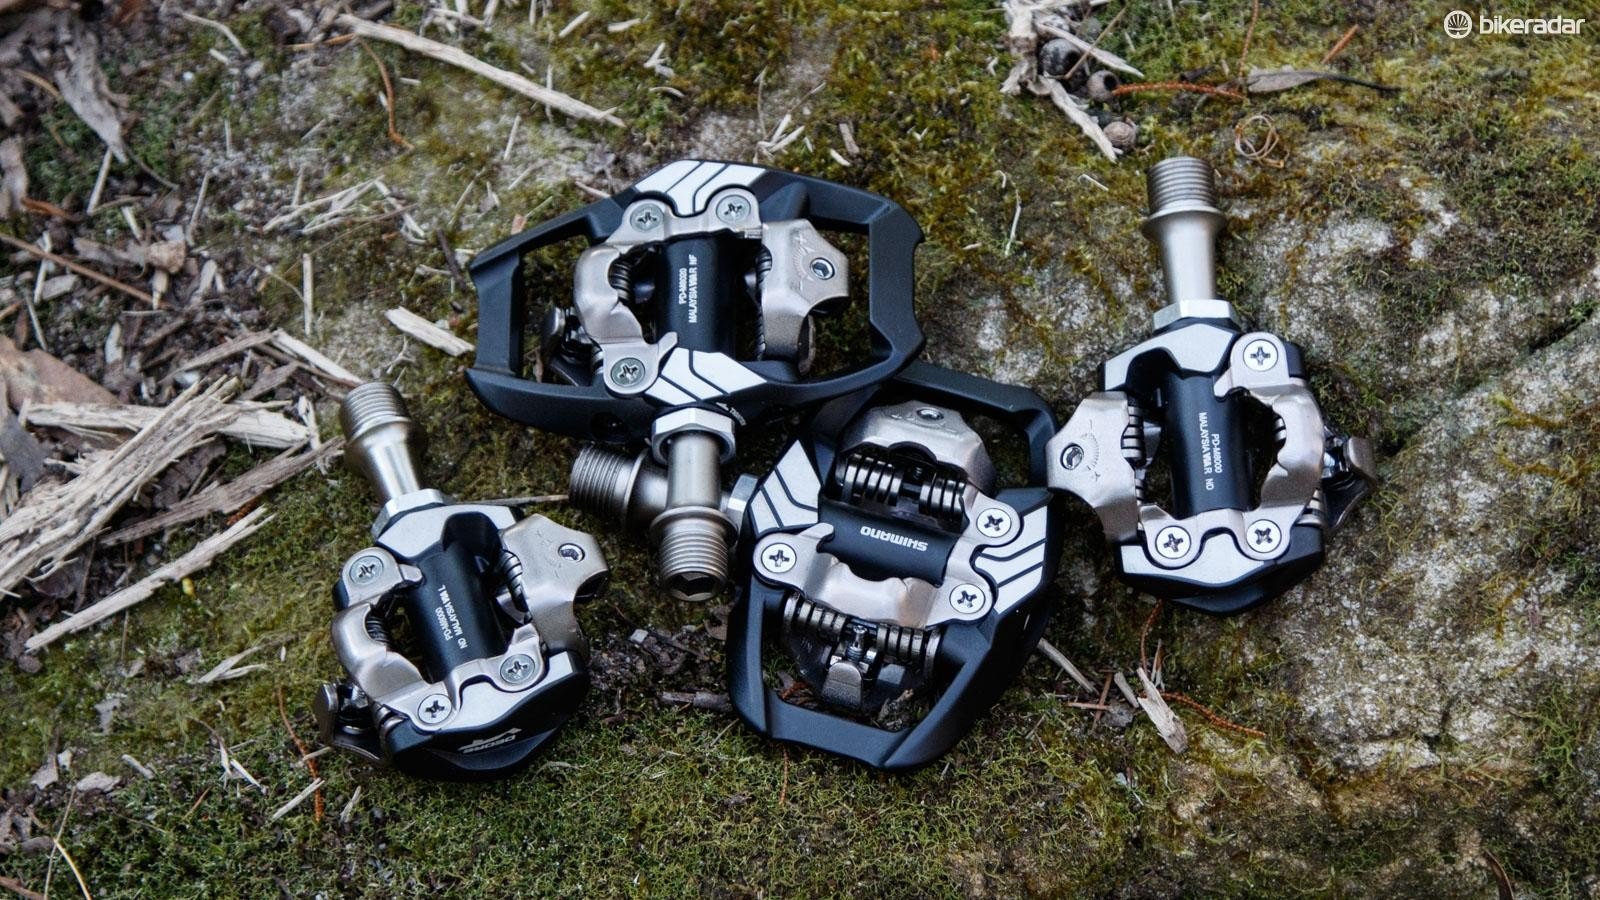 Clipless pedals are popular among road cyclists and cross-country mountain bikers for the secure attachment to the pedals they provide. getting out is a matter of a simple, easy sideways twist